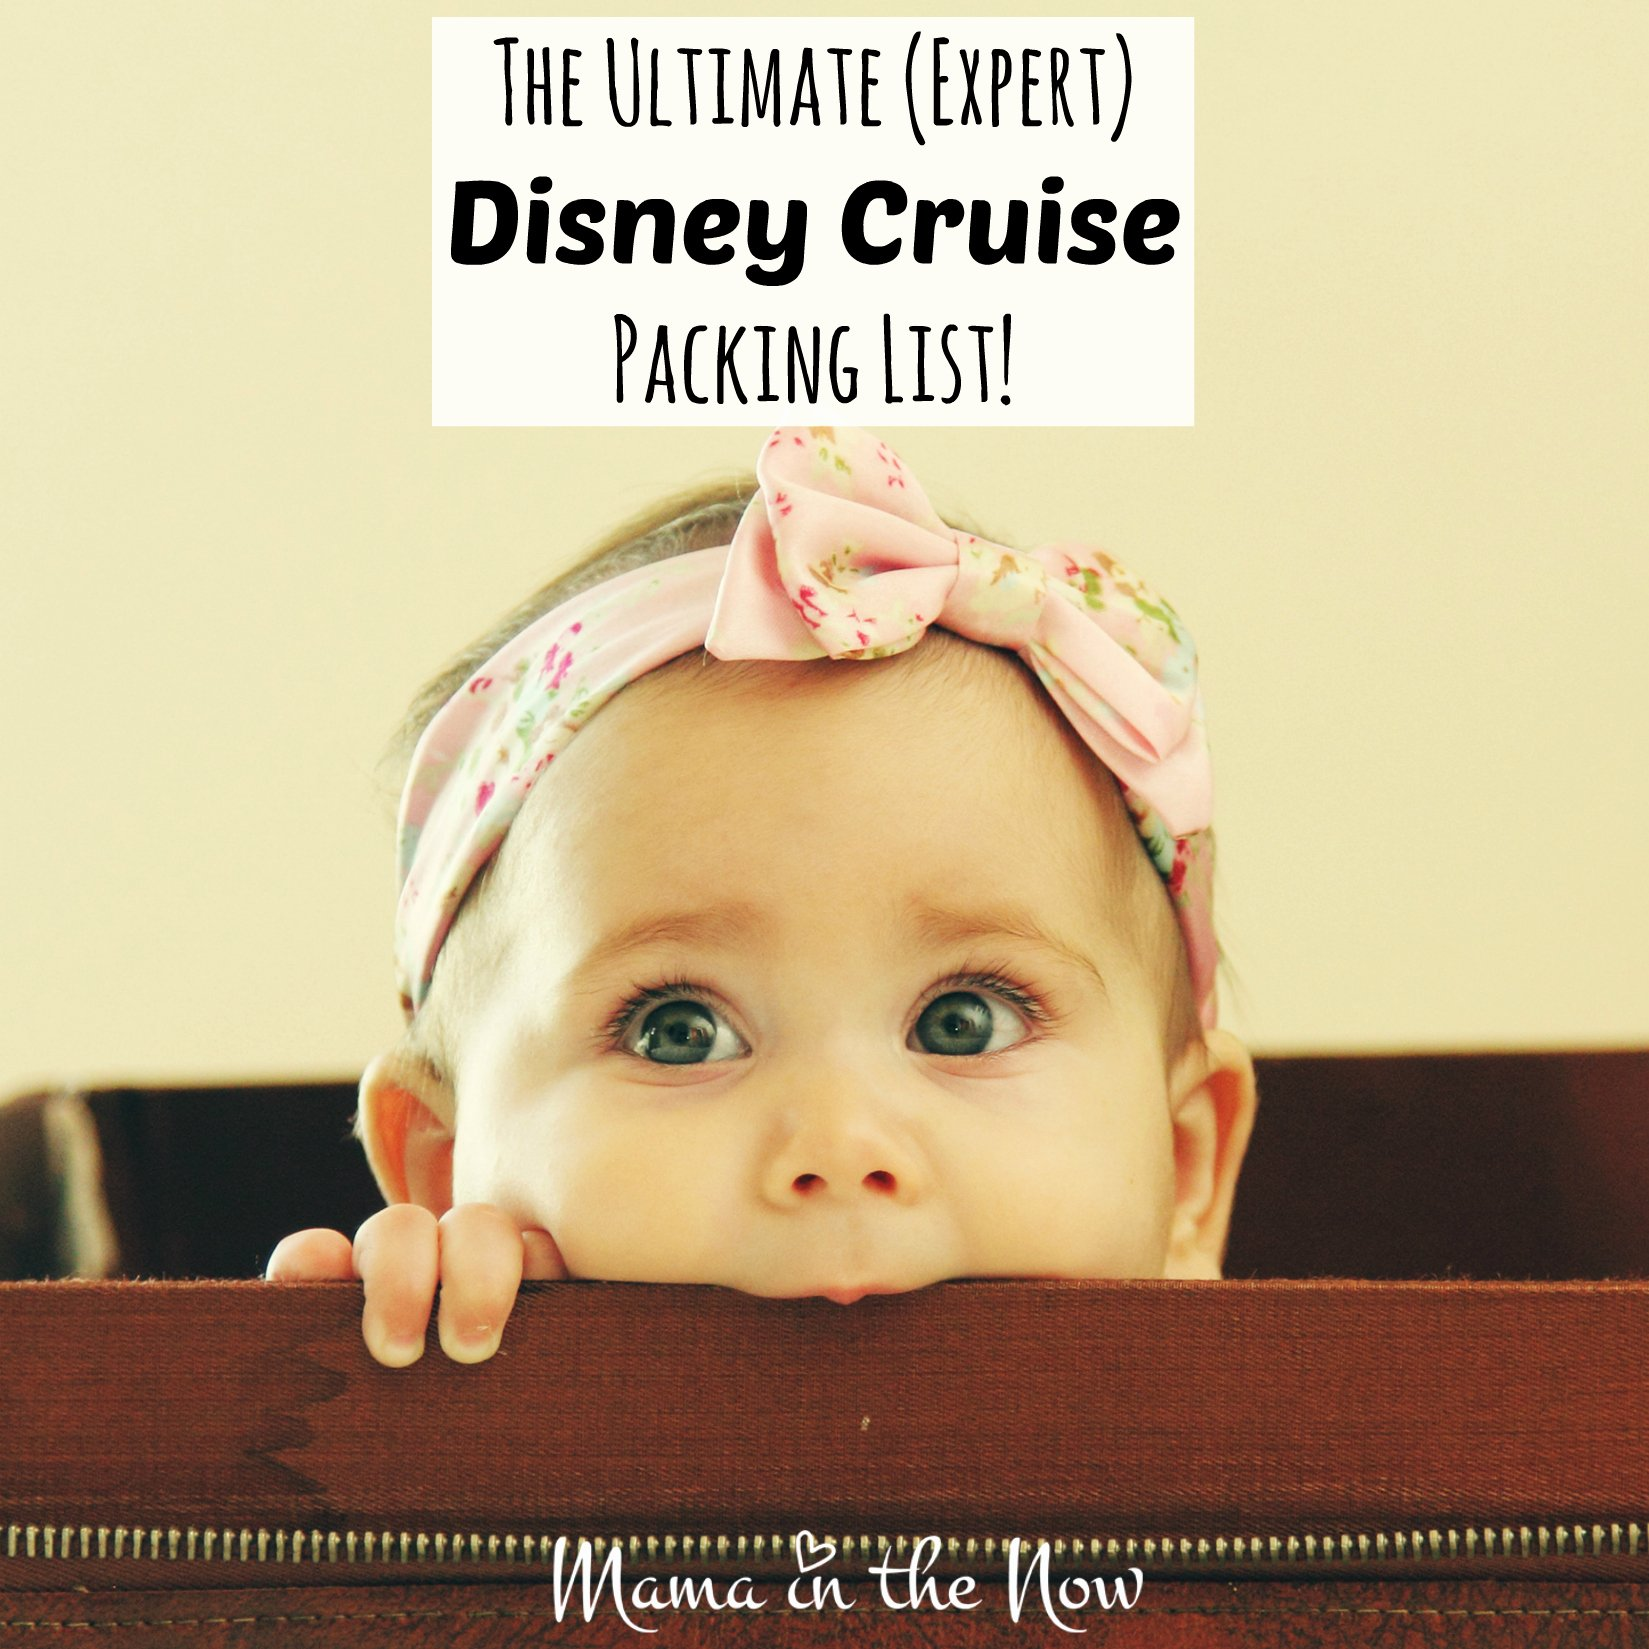 Ultimate Cruise Packing List Inspirational the Ultimate Expert Disney Cruise Packing List